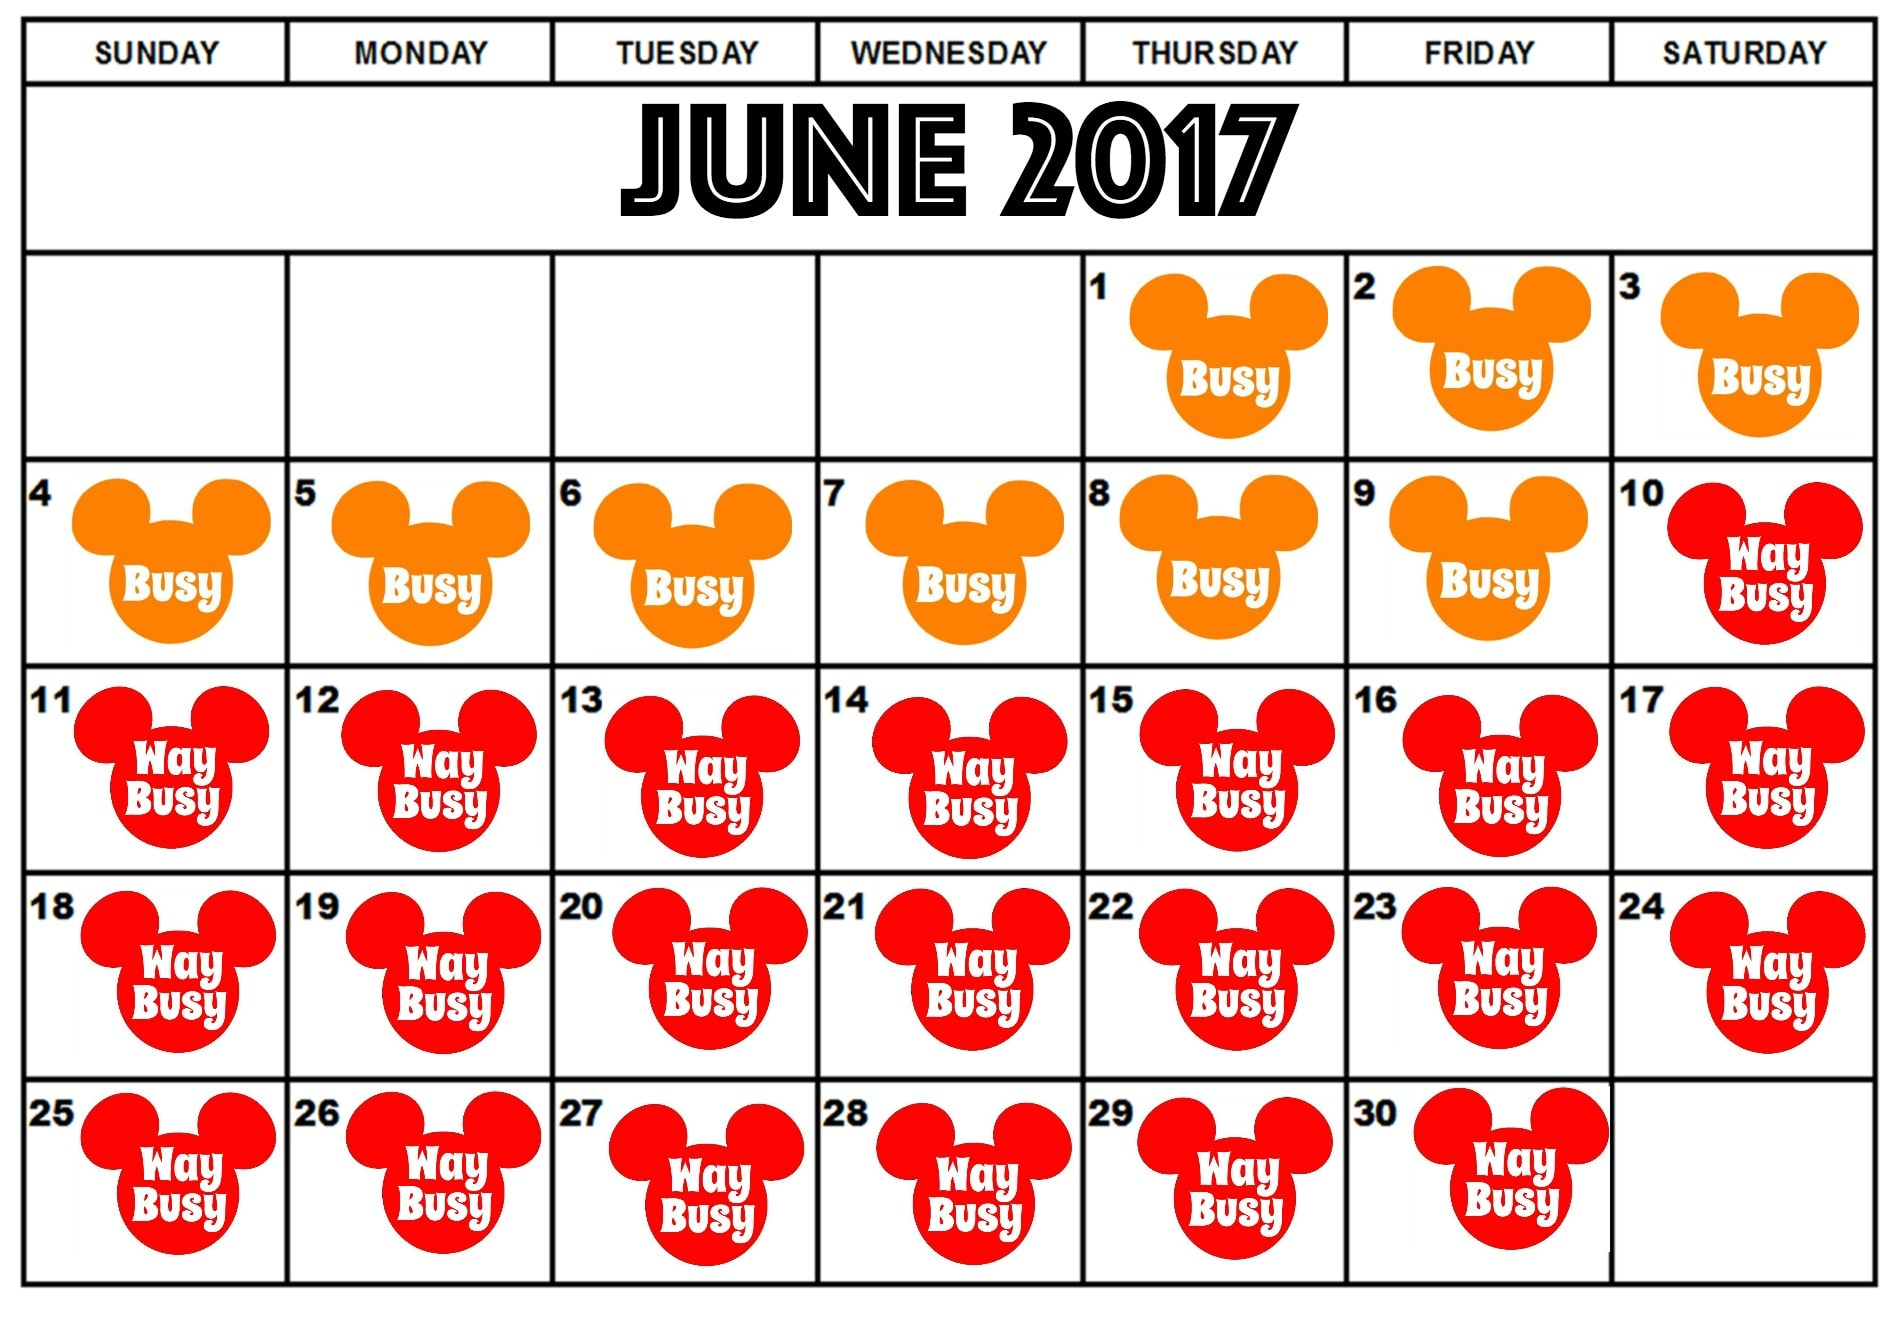 Best Days to Visit Disney World in 2017